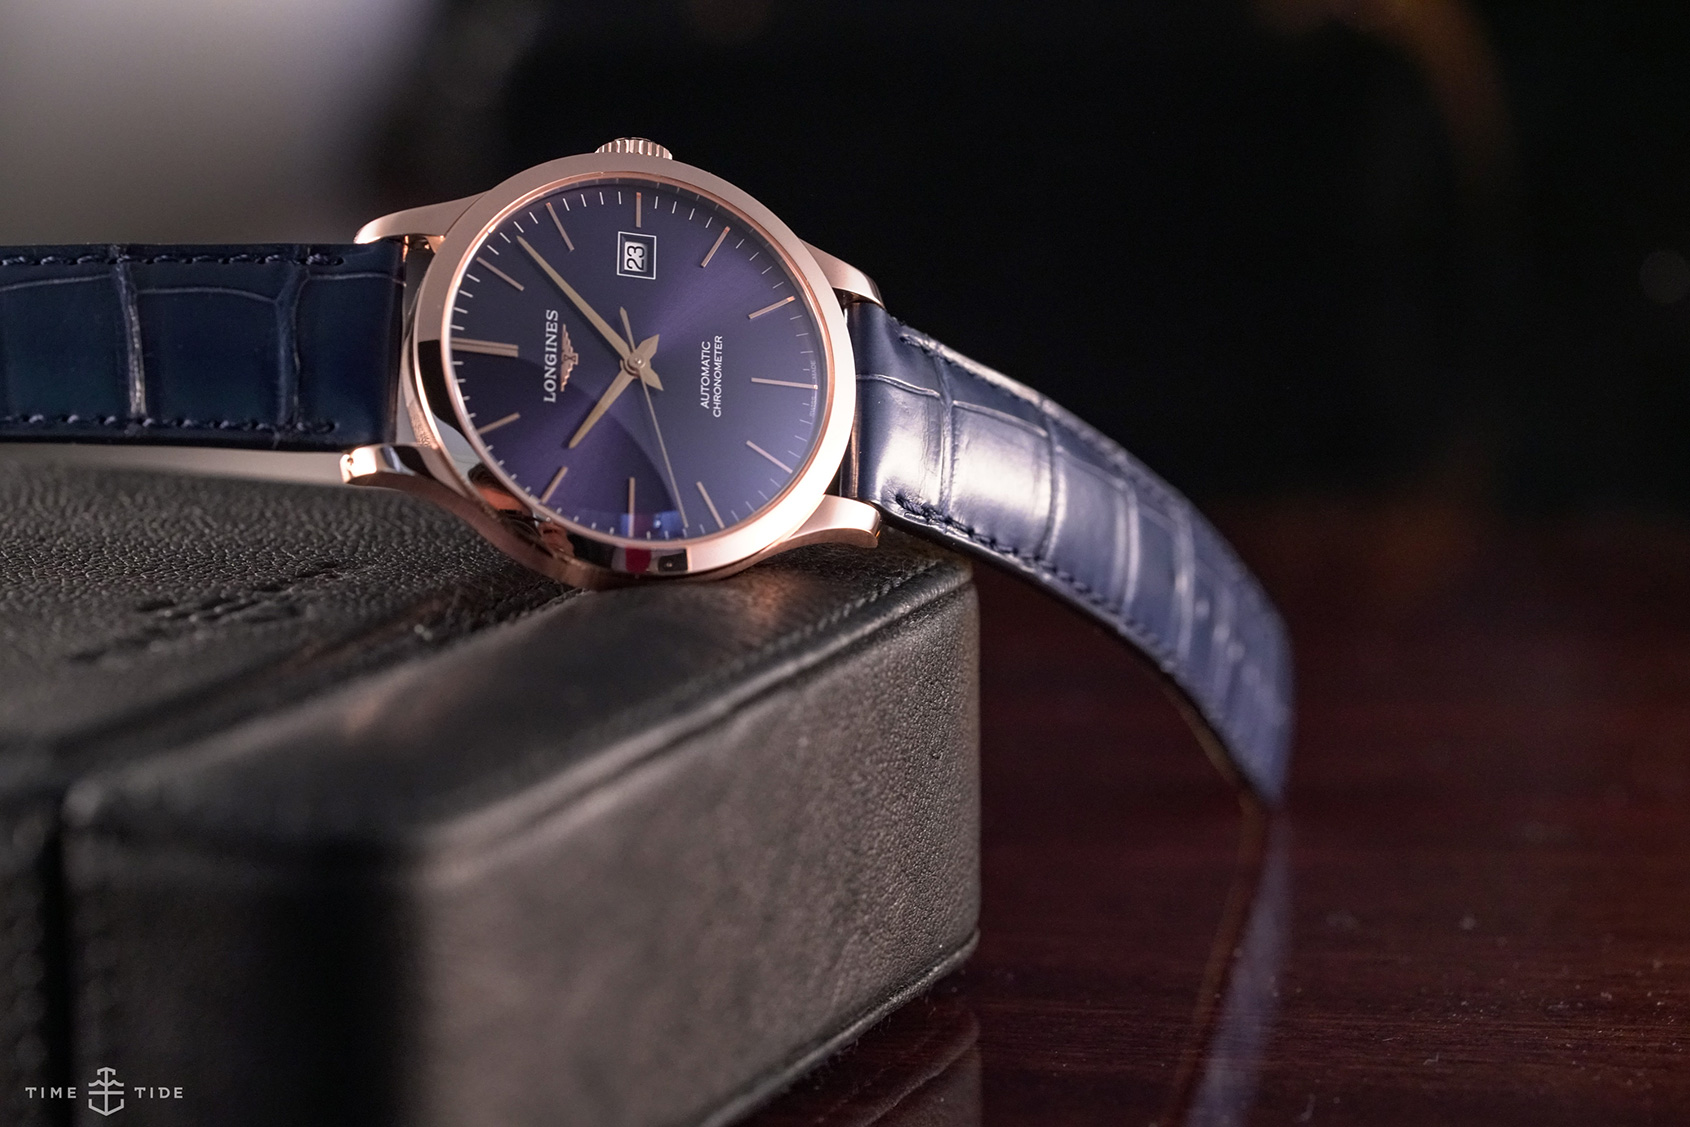 cba37b08aa2 HANDS-ON  The Longines Record - going for gold